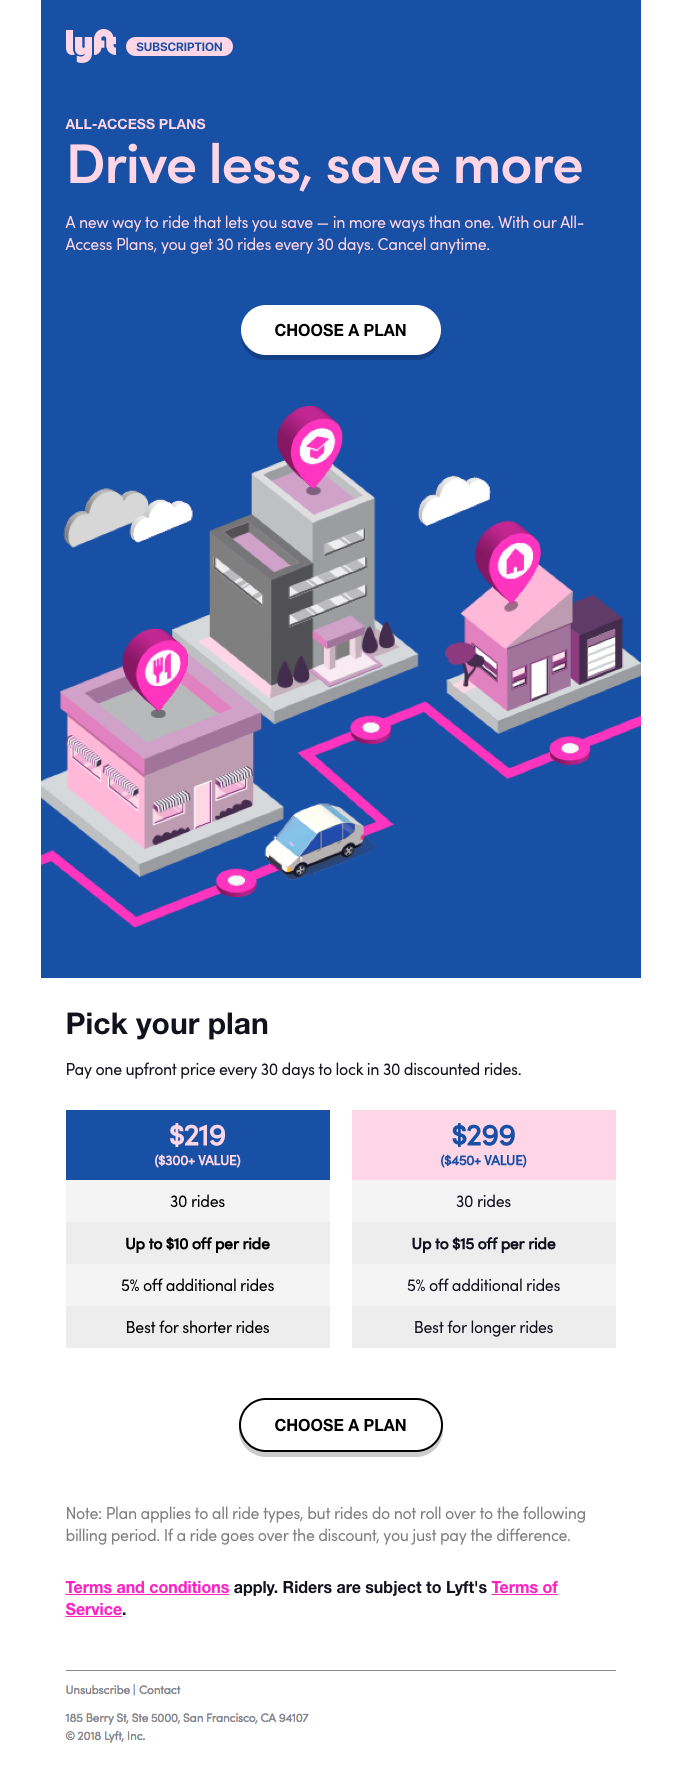 All-Access Plans: A new way to ride